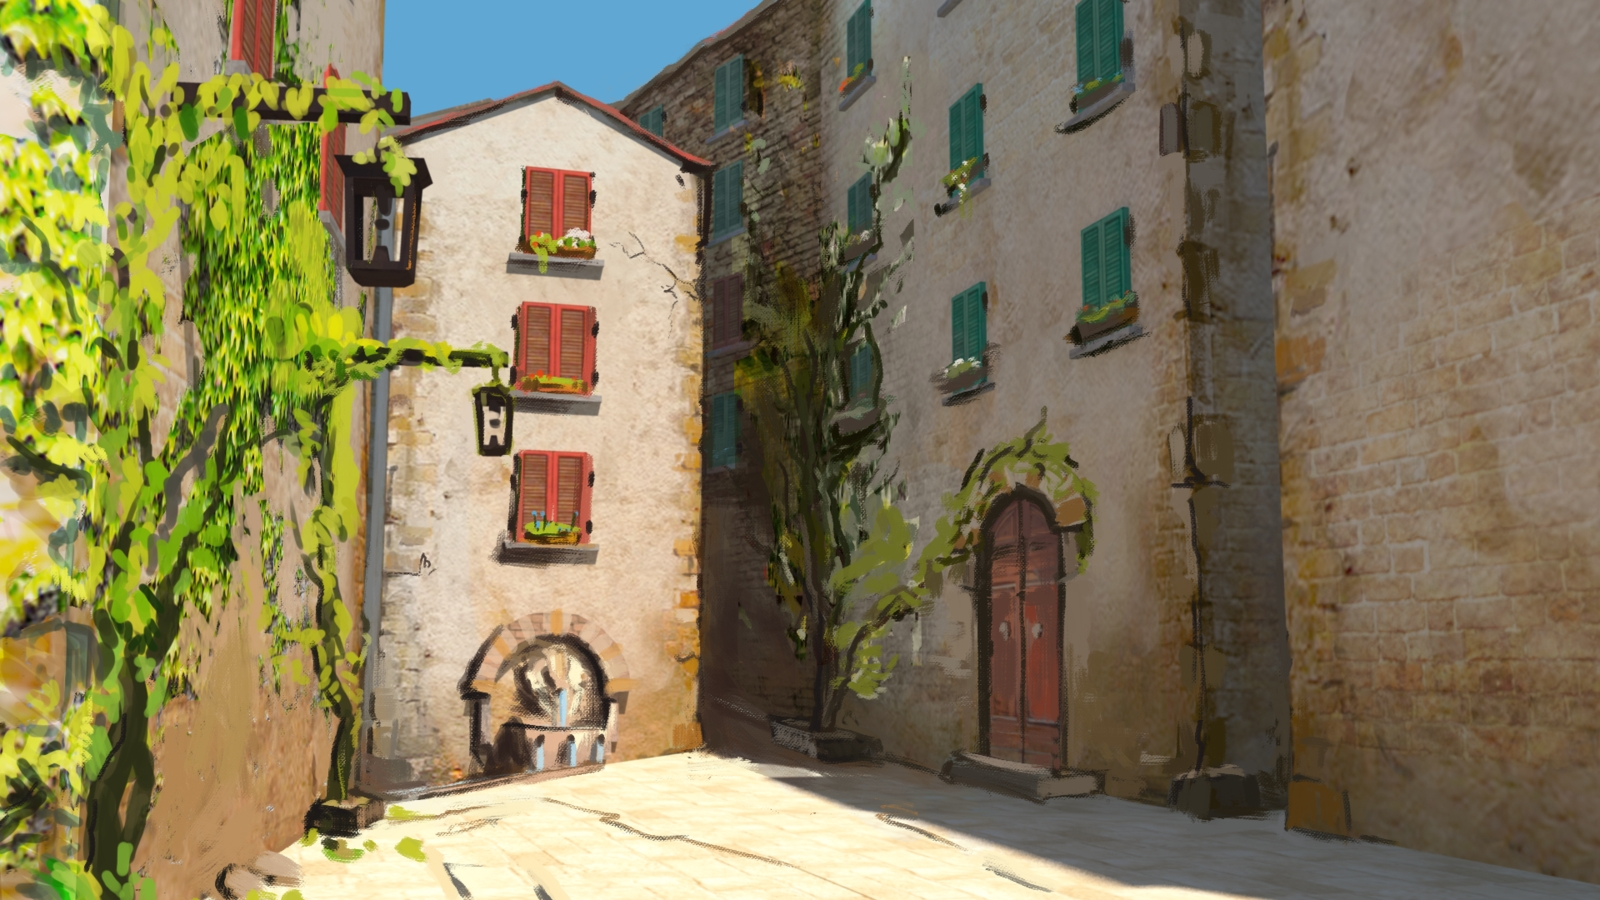 Italian Scene Wall Art Intended For Most Up To Date Italian Village Scenesleepytimes On Deviantart (View 6 of 15)